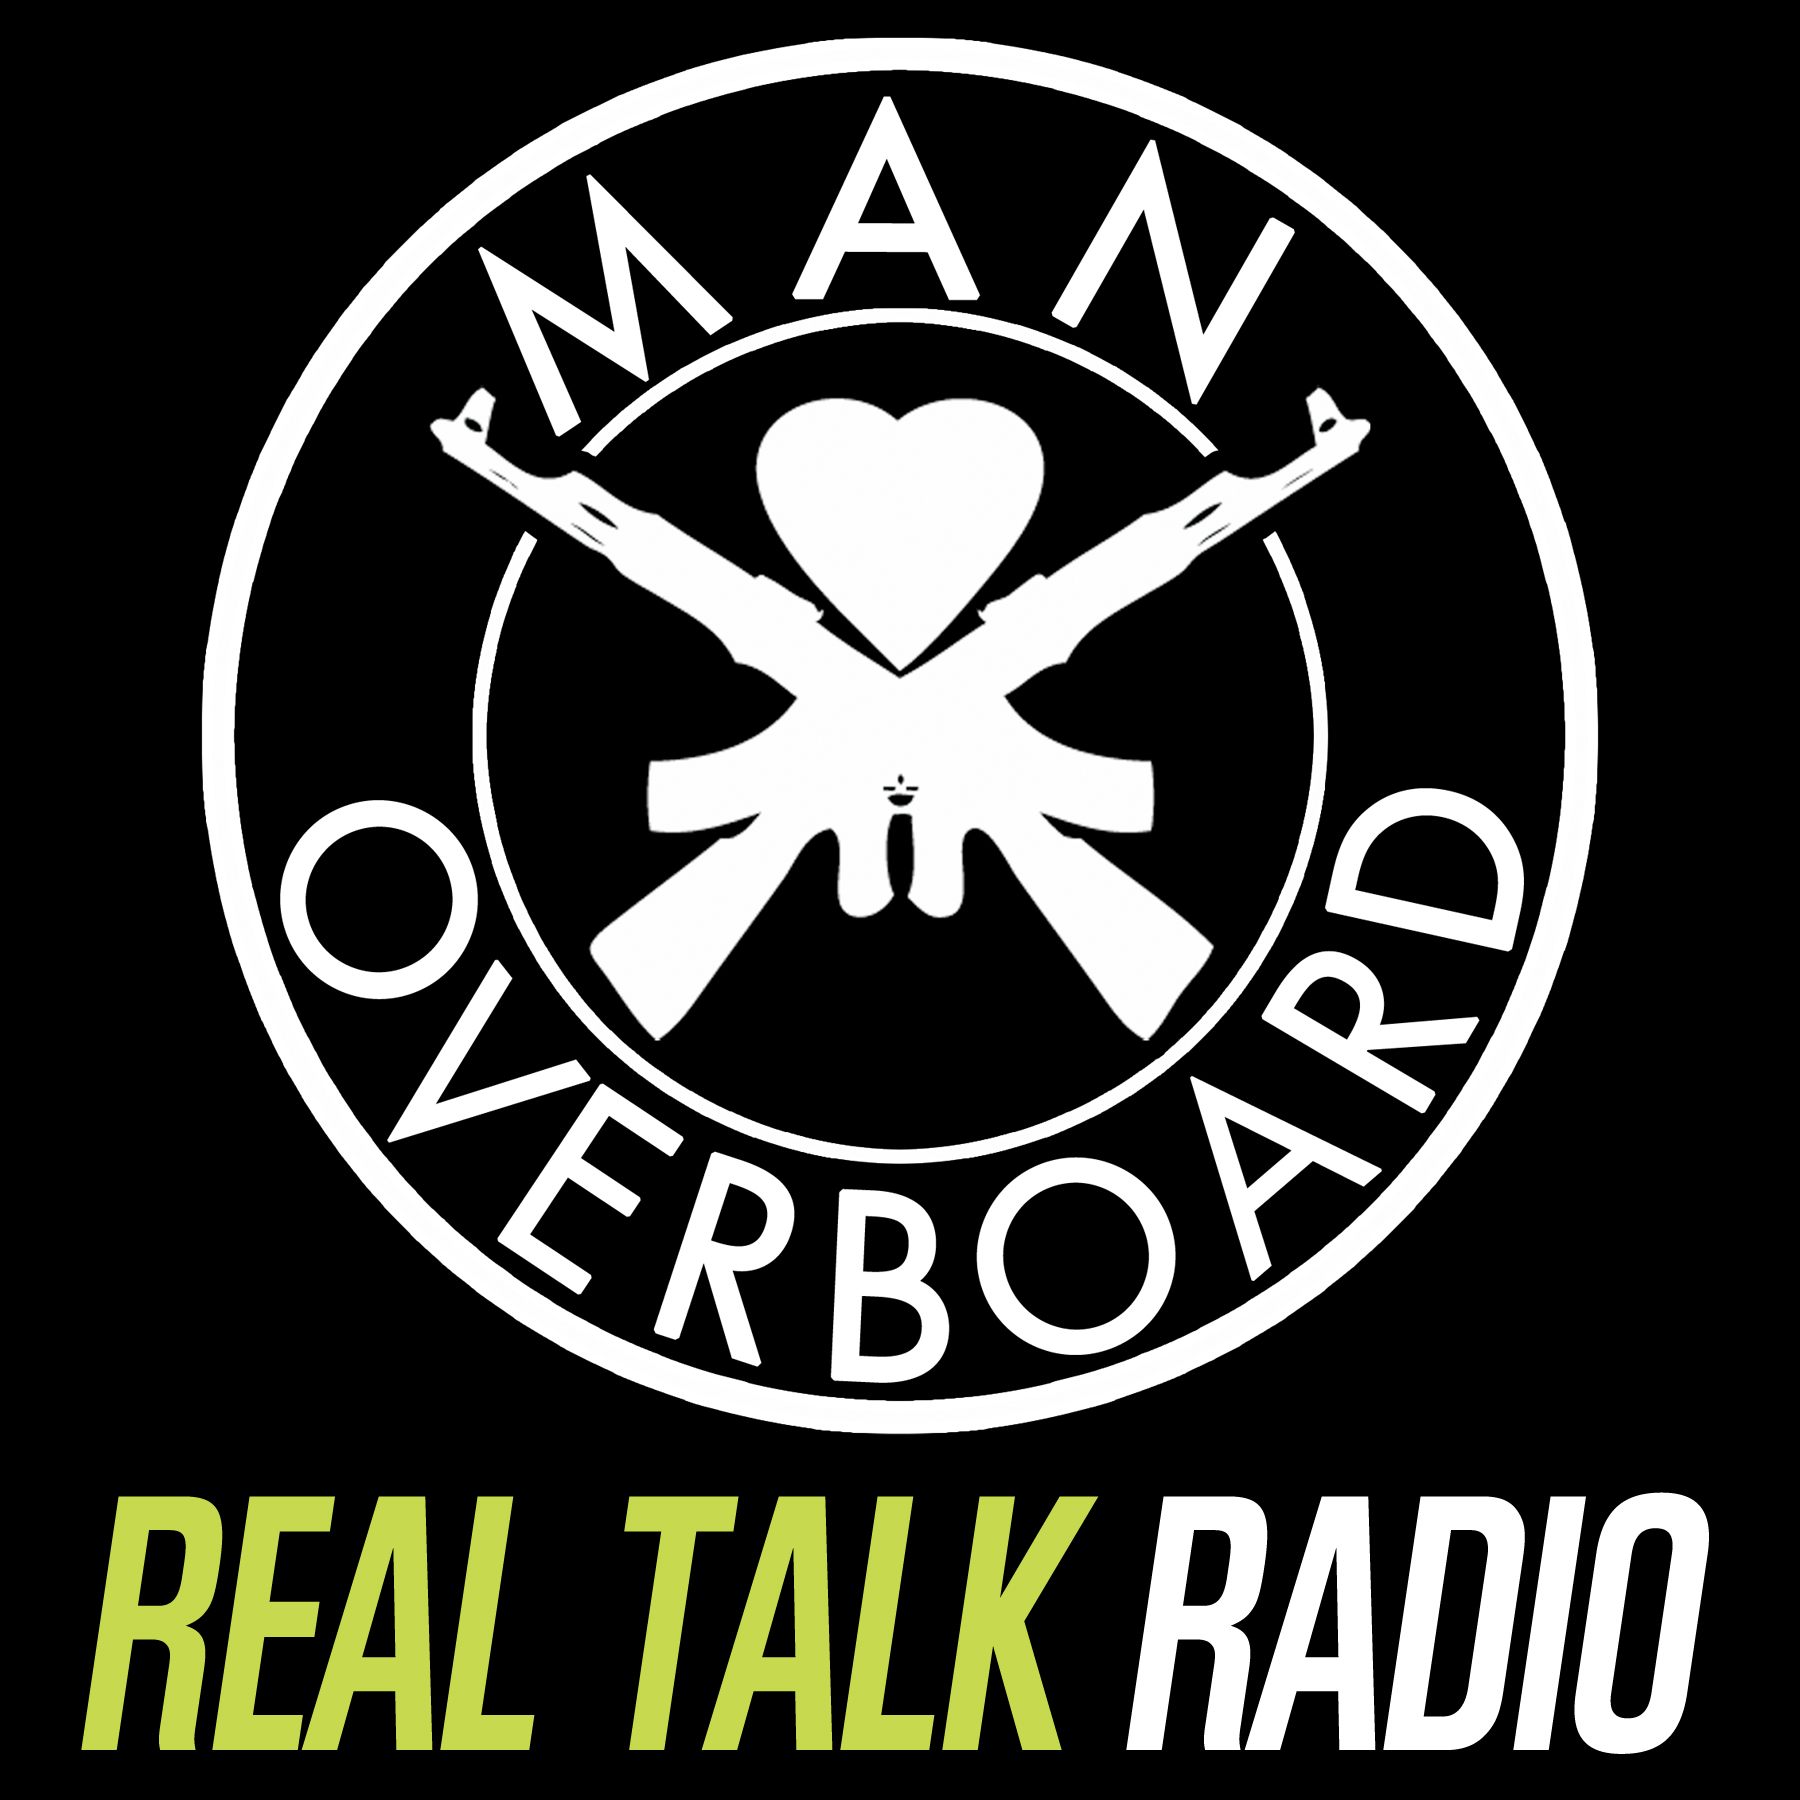 ManORealTalkRadio